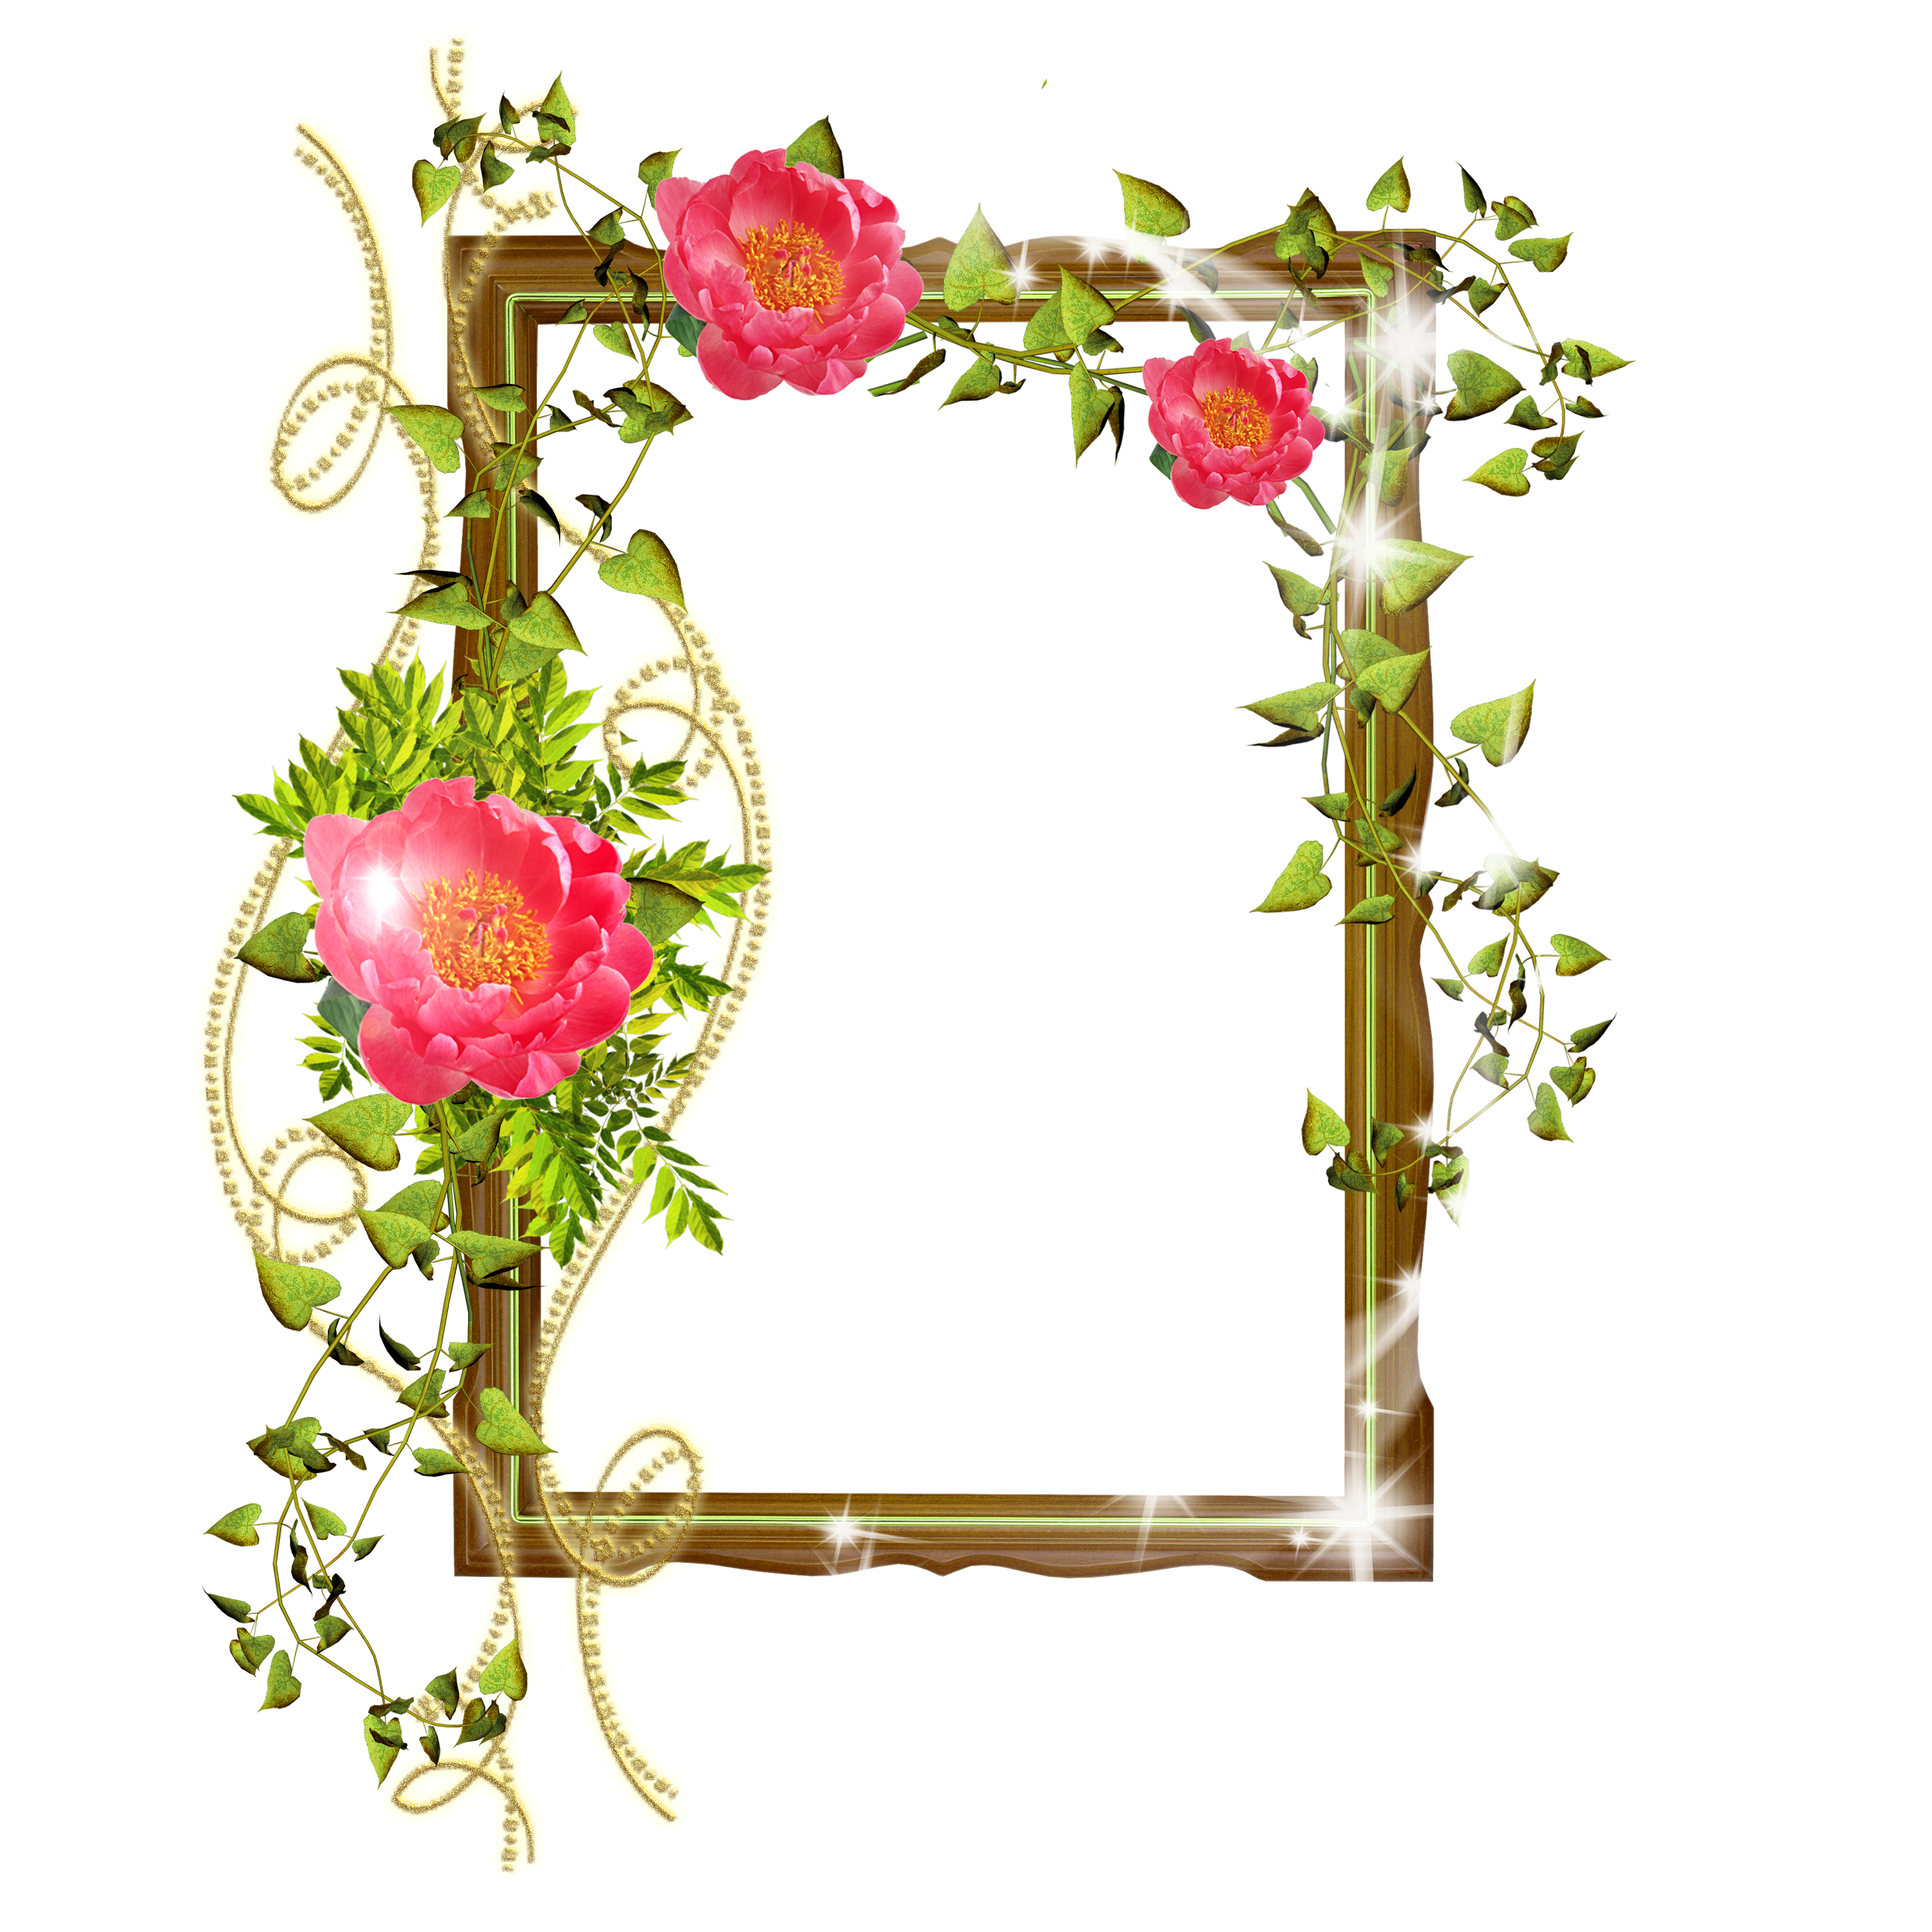 Shining transparent with flowers. Plants clipart frame